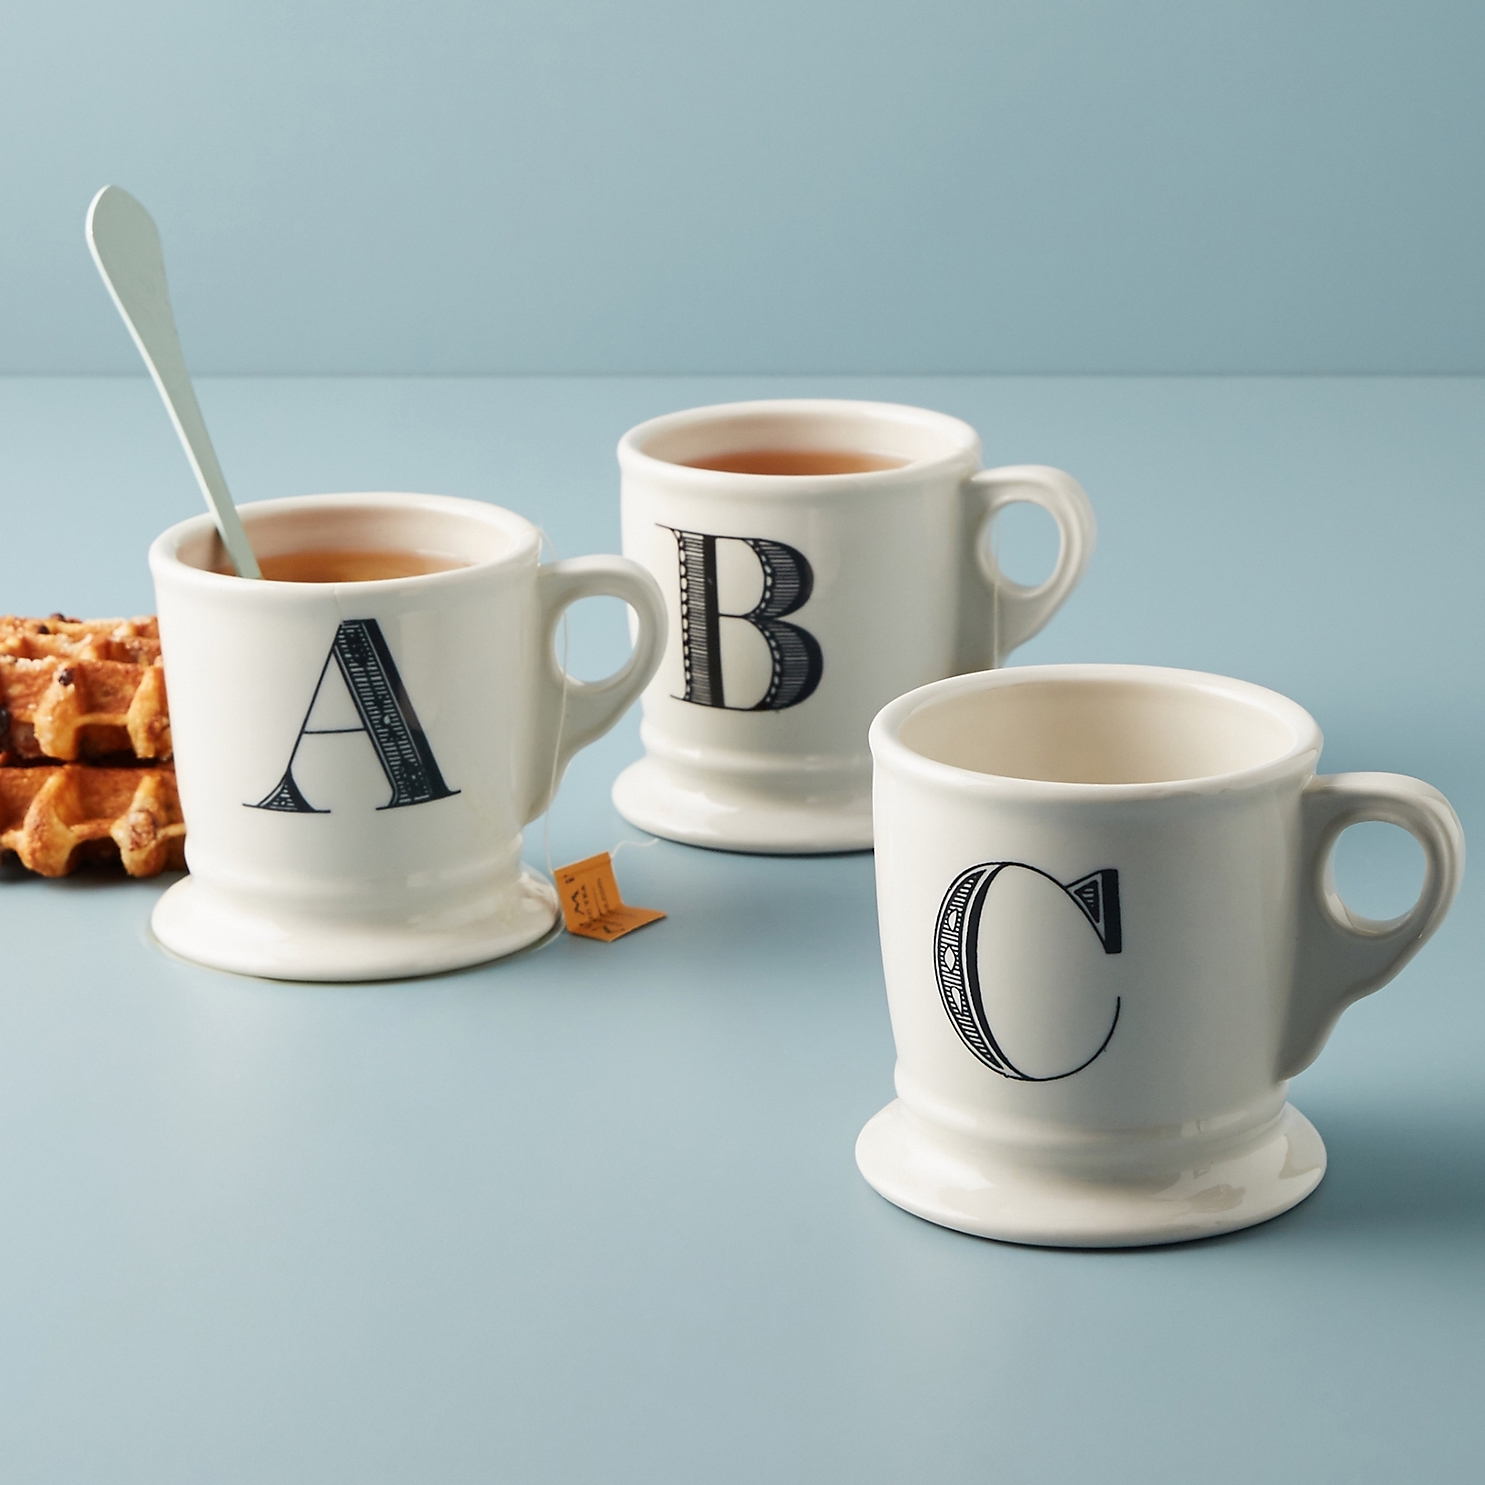 three mugs with initials on them